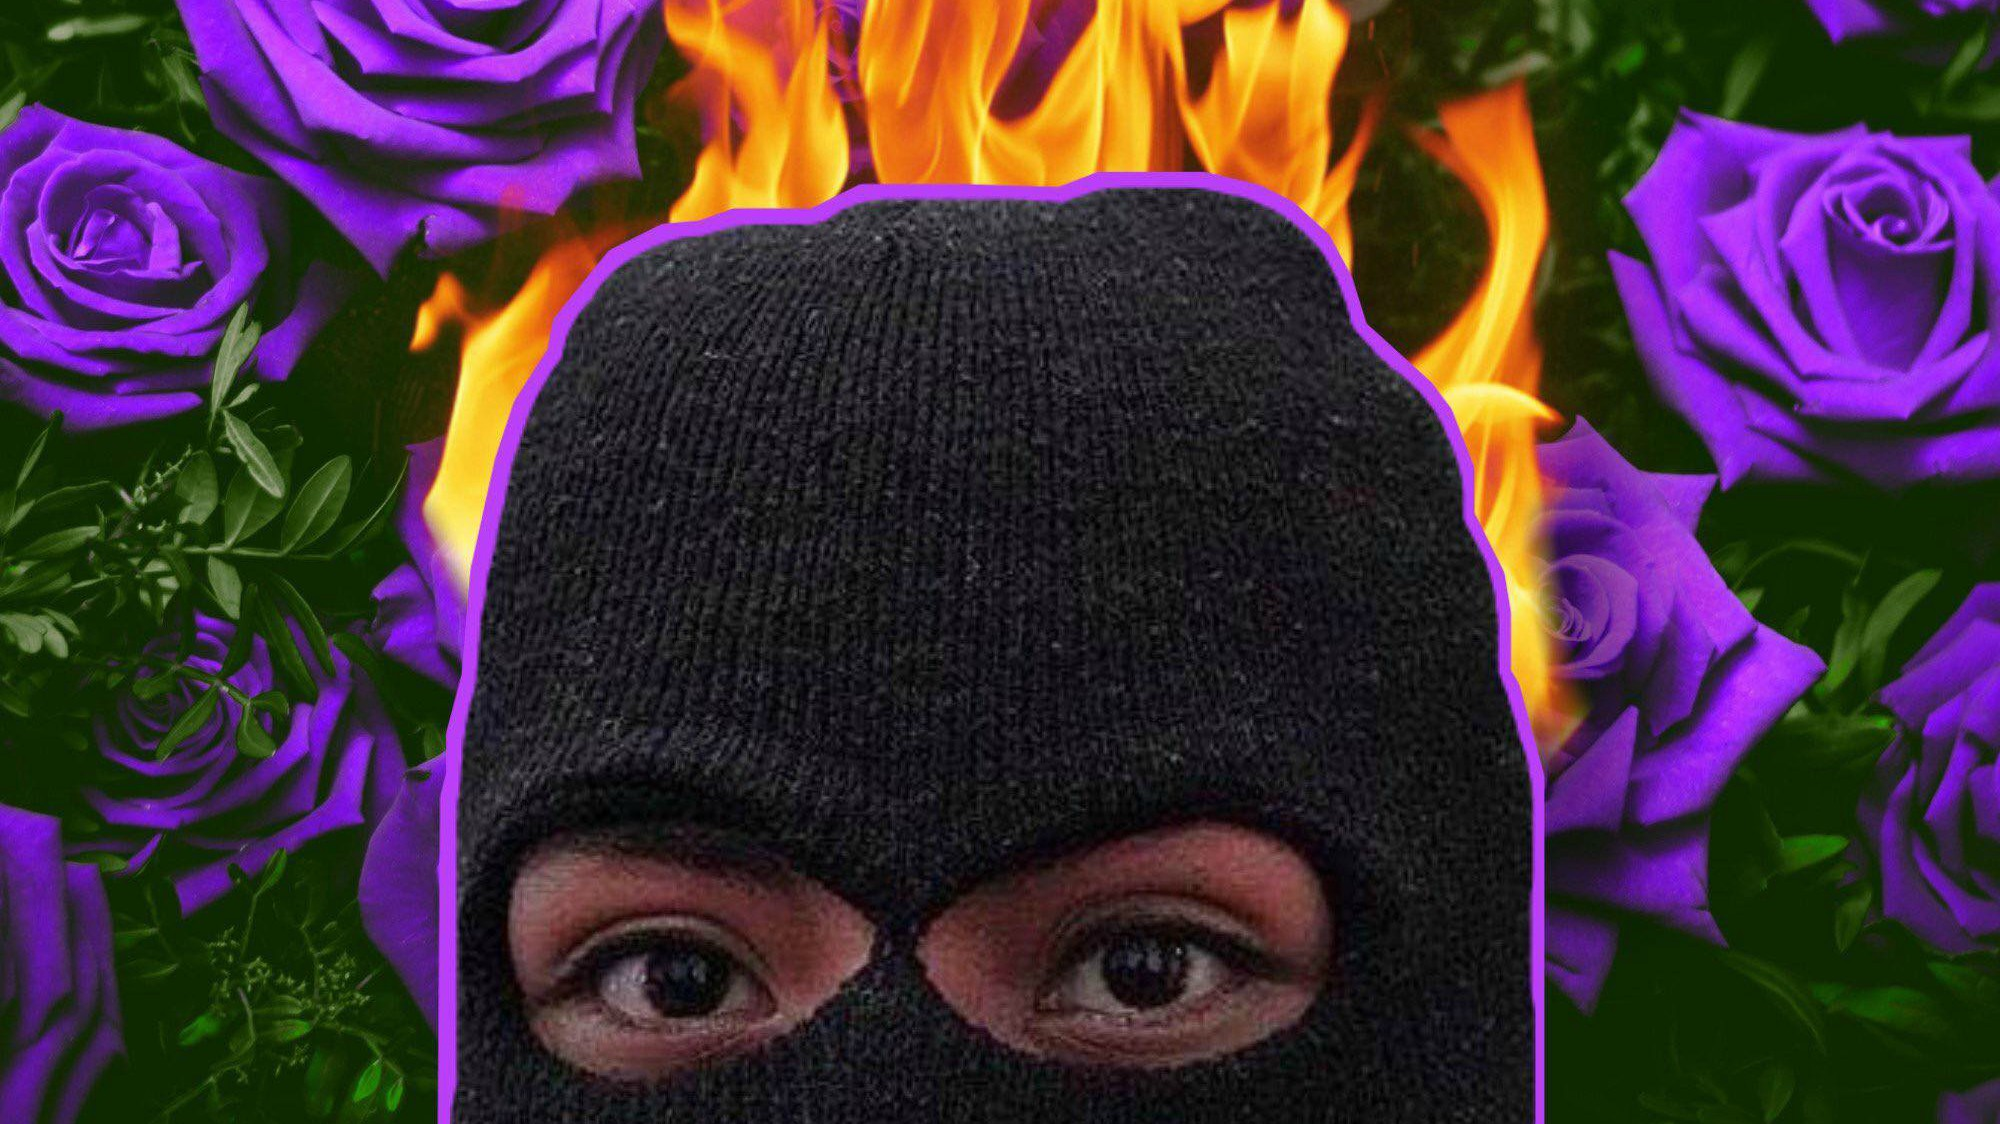 Digital art image of masked woman protester from occupation with flames behind her and purple roses to either side.